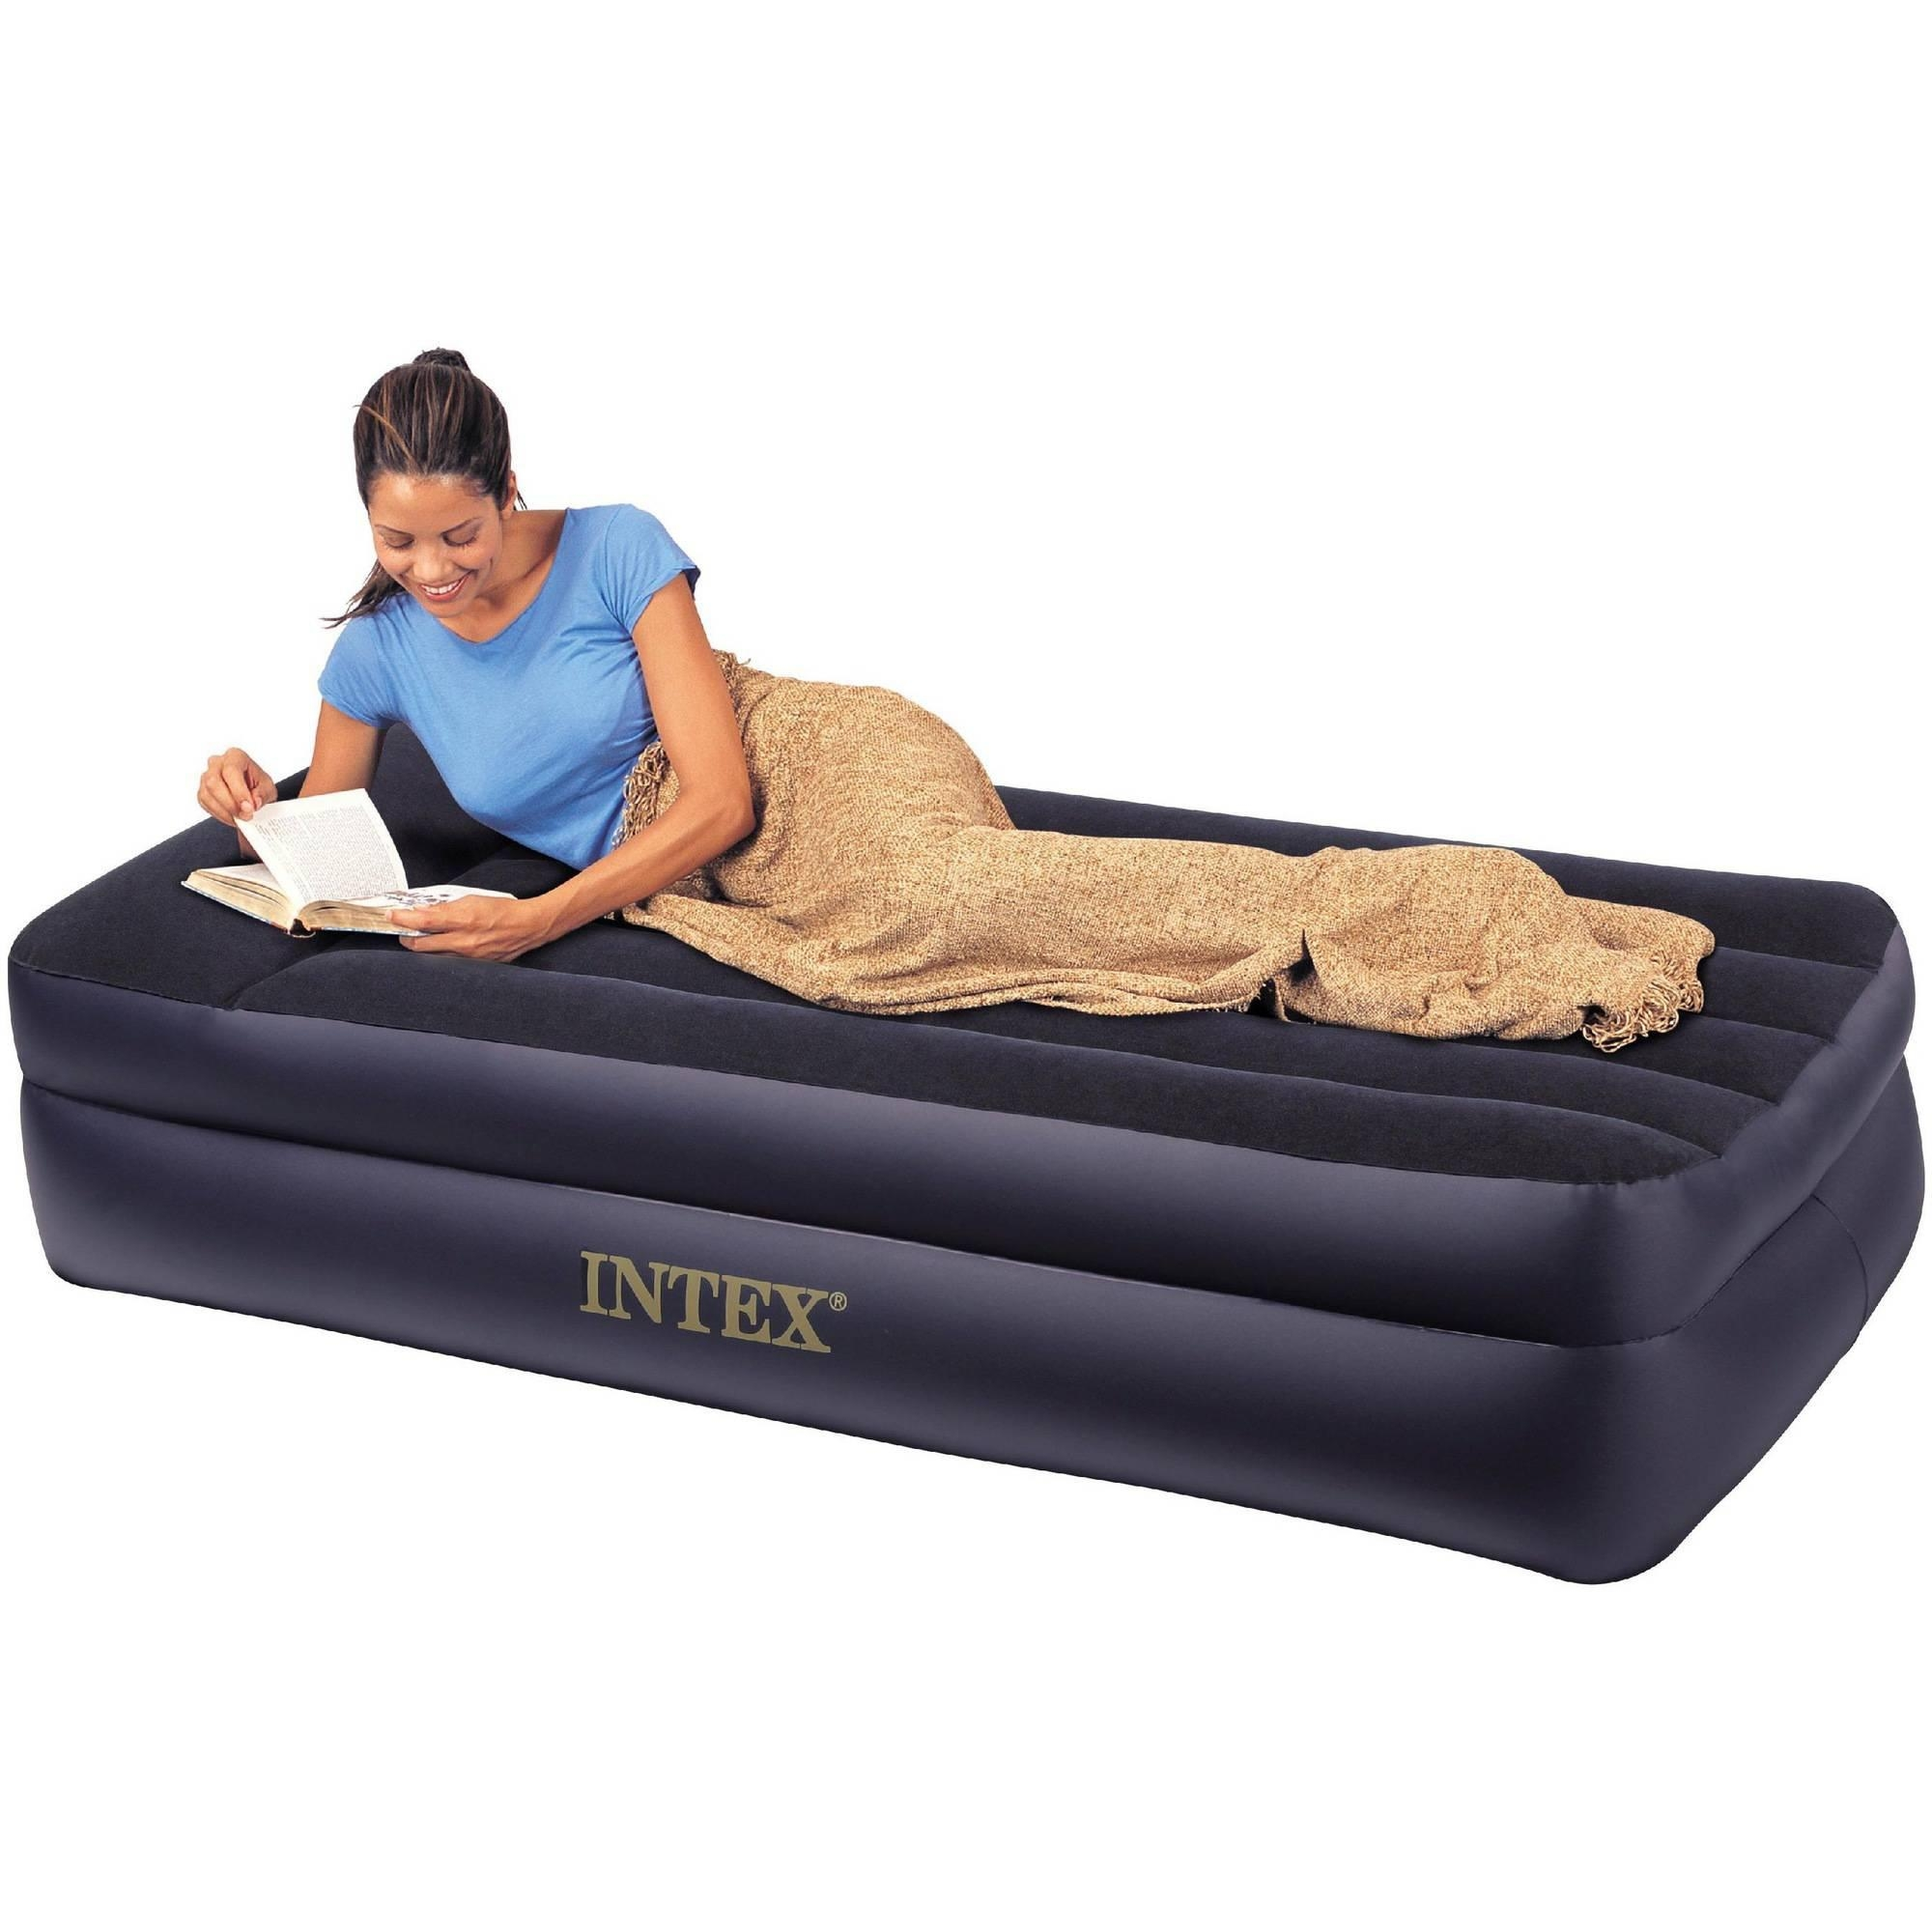 Intex Air Beds Regarding Inflatable Full Size Mattress (Image 4 of 20)